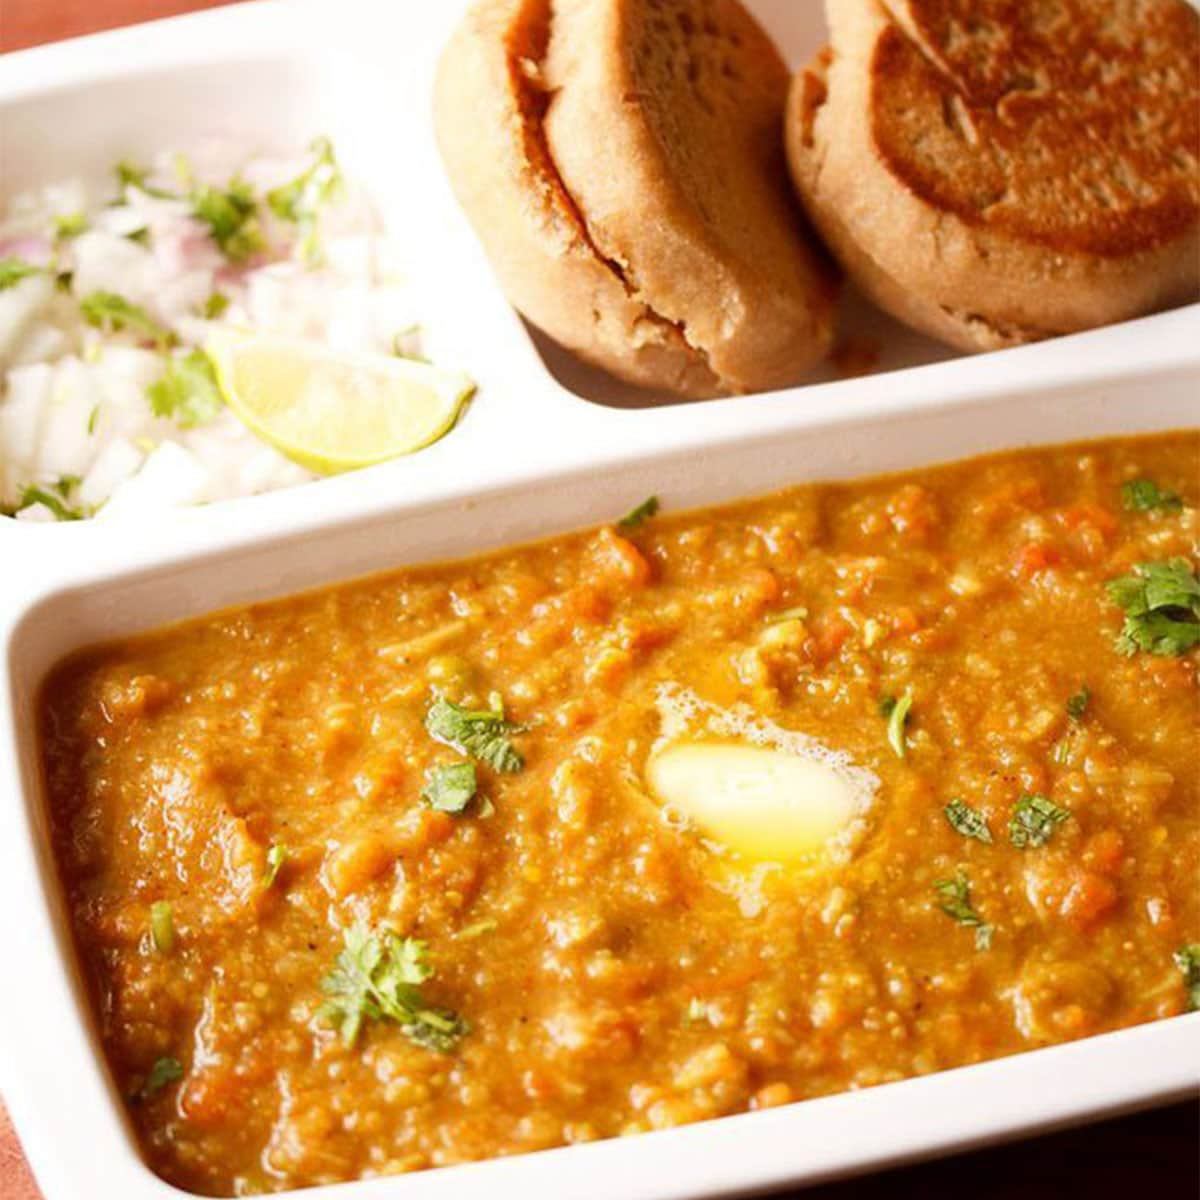 instant pot pav bhaji garnished with cilantro and served in a white tray with toasted rolls and chopped onions and lemons